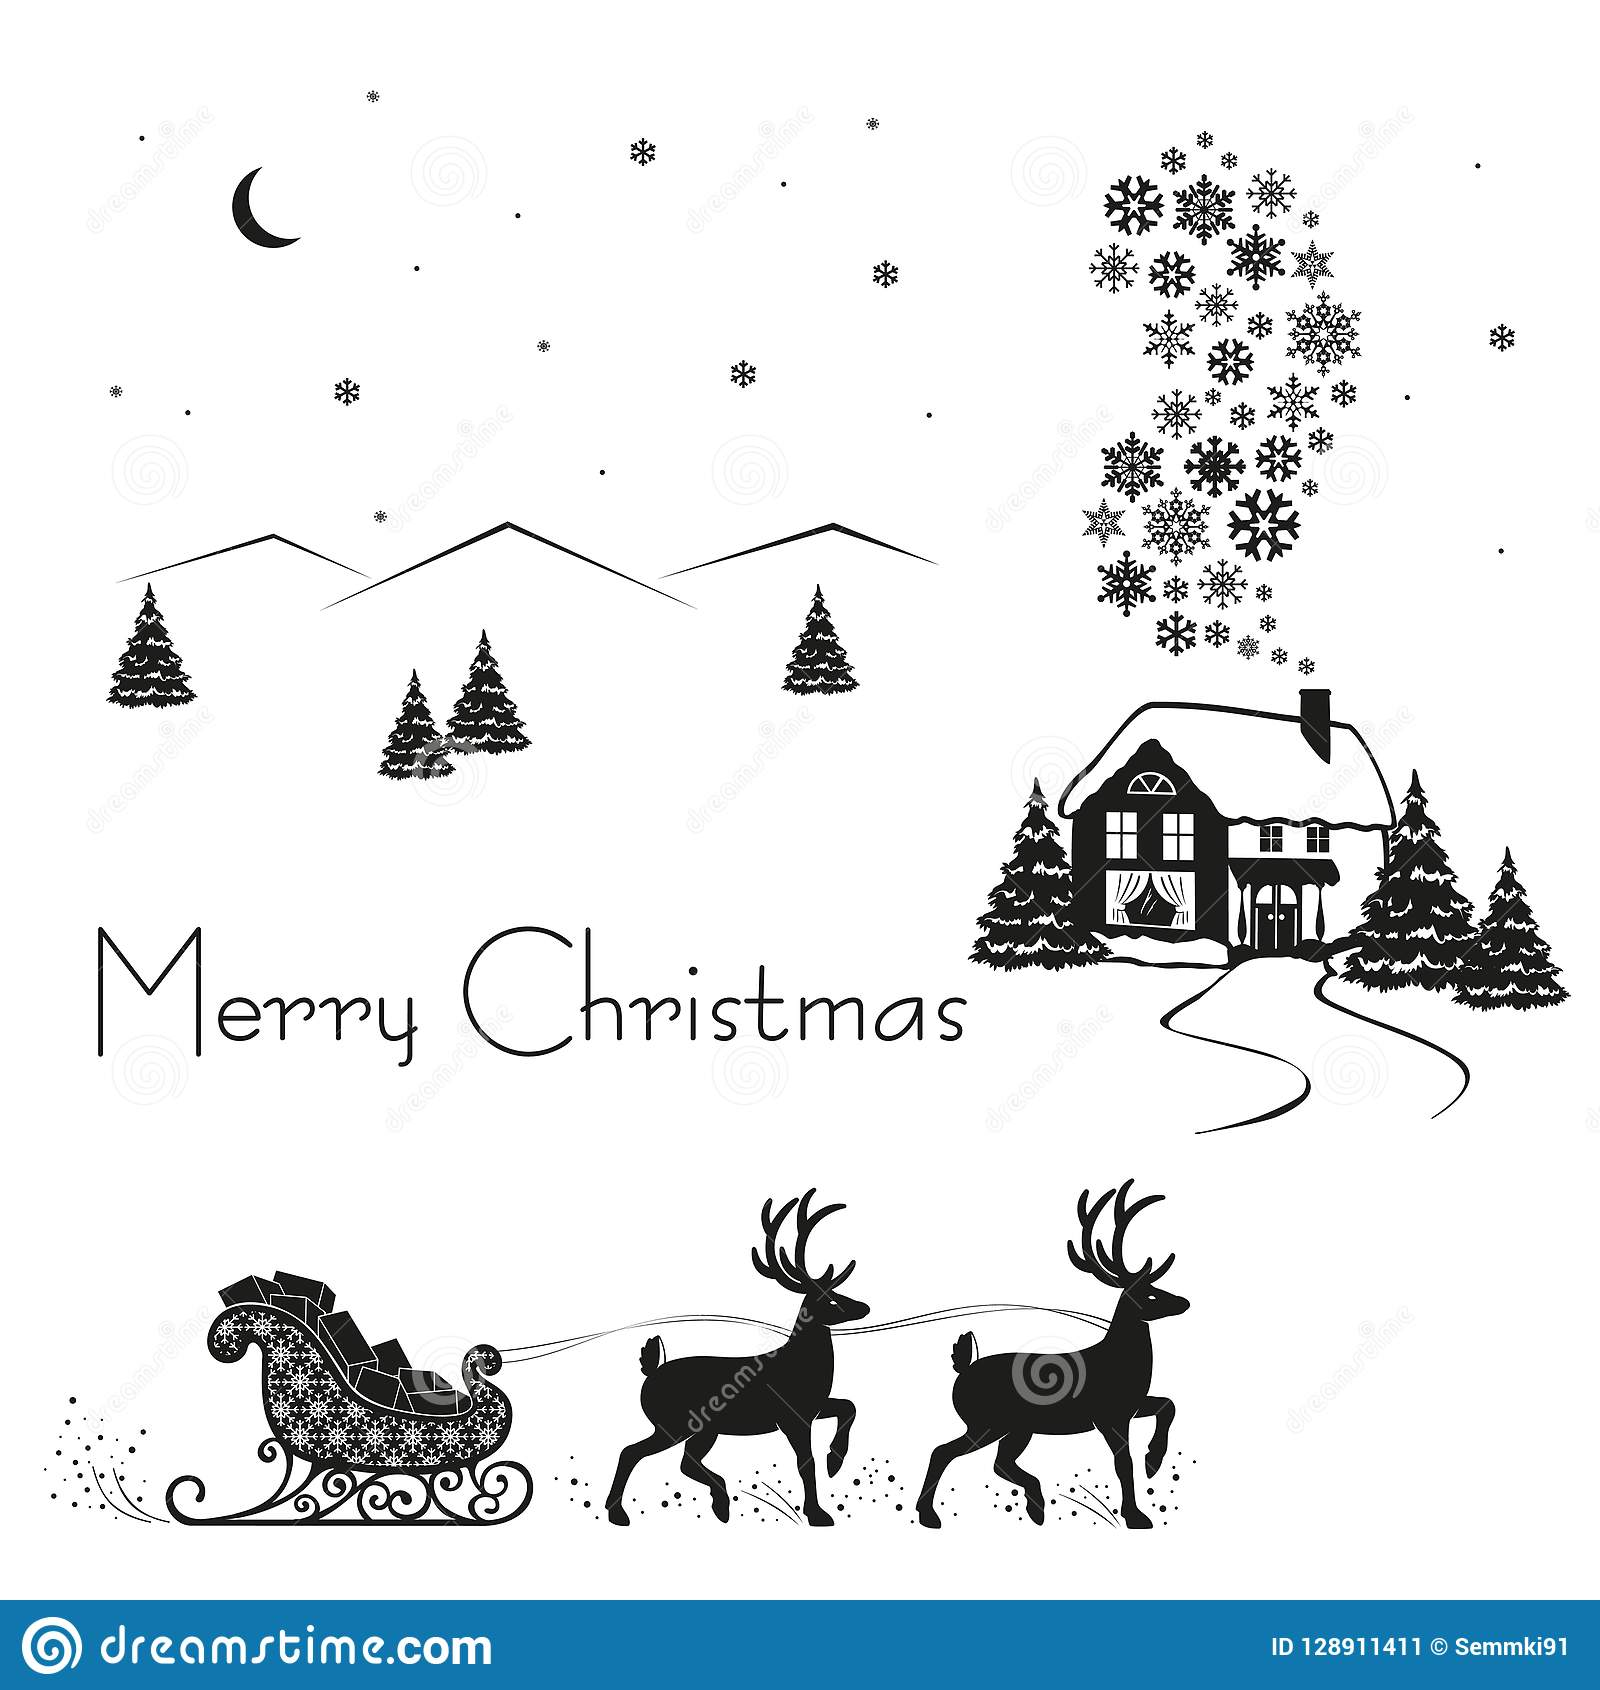 Deer driven sledge of santa claus with gifts black silhouette on white snow vector